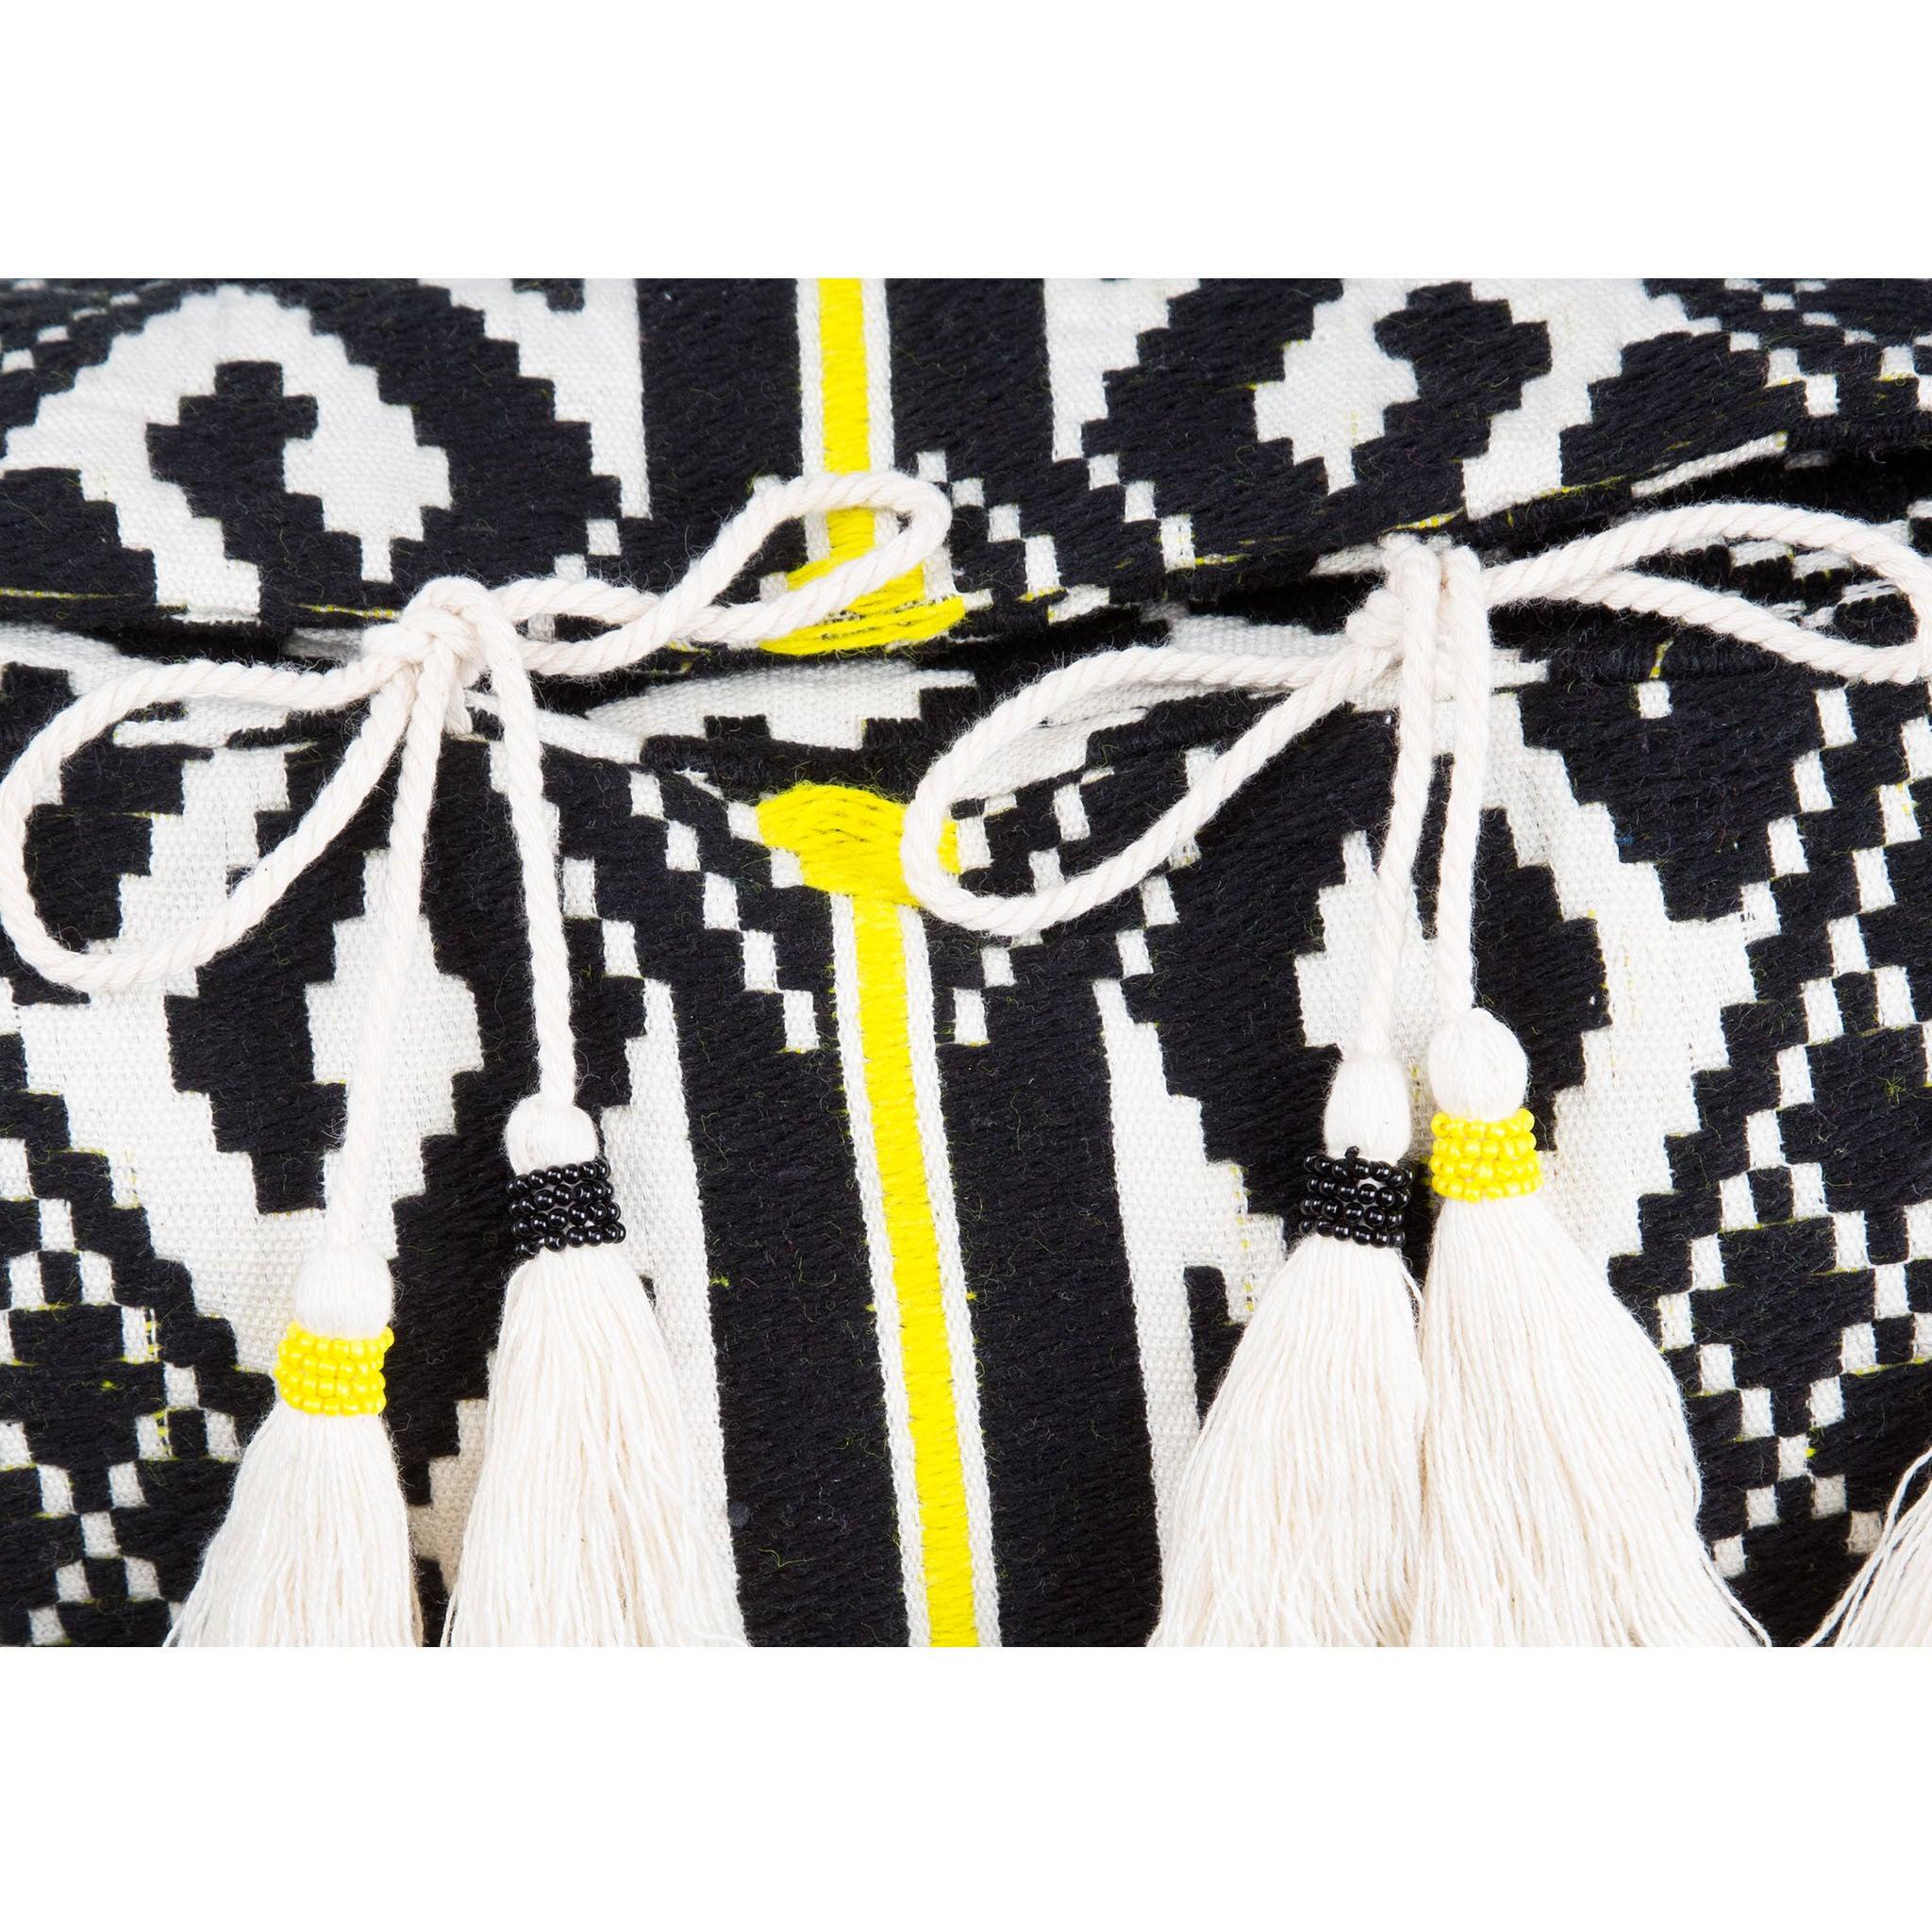 Bedouin-style yellow, black & white tasselled cotton cushion - Bivain - 4